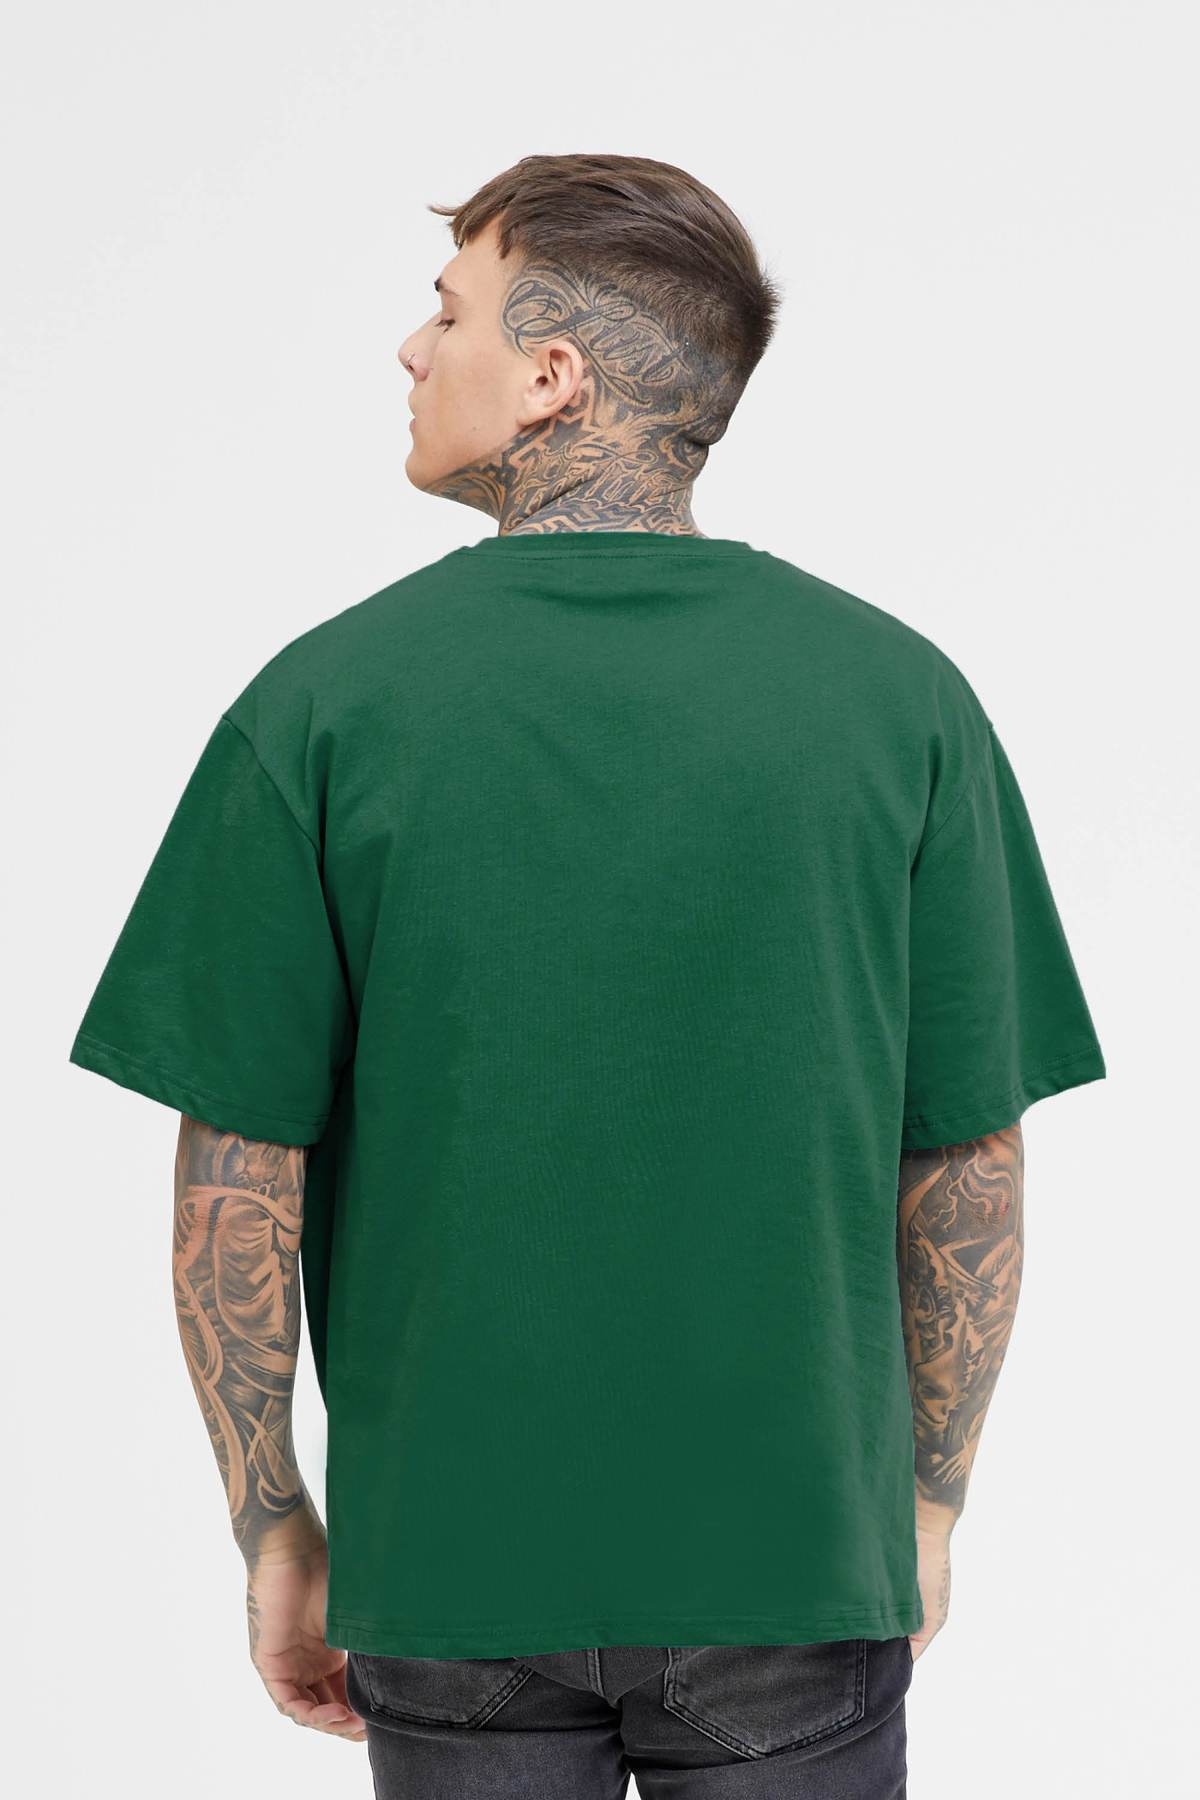 Oversized Nothing Green Jersey